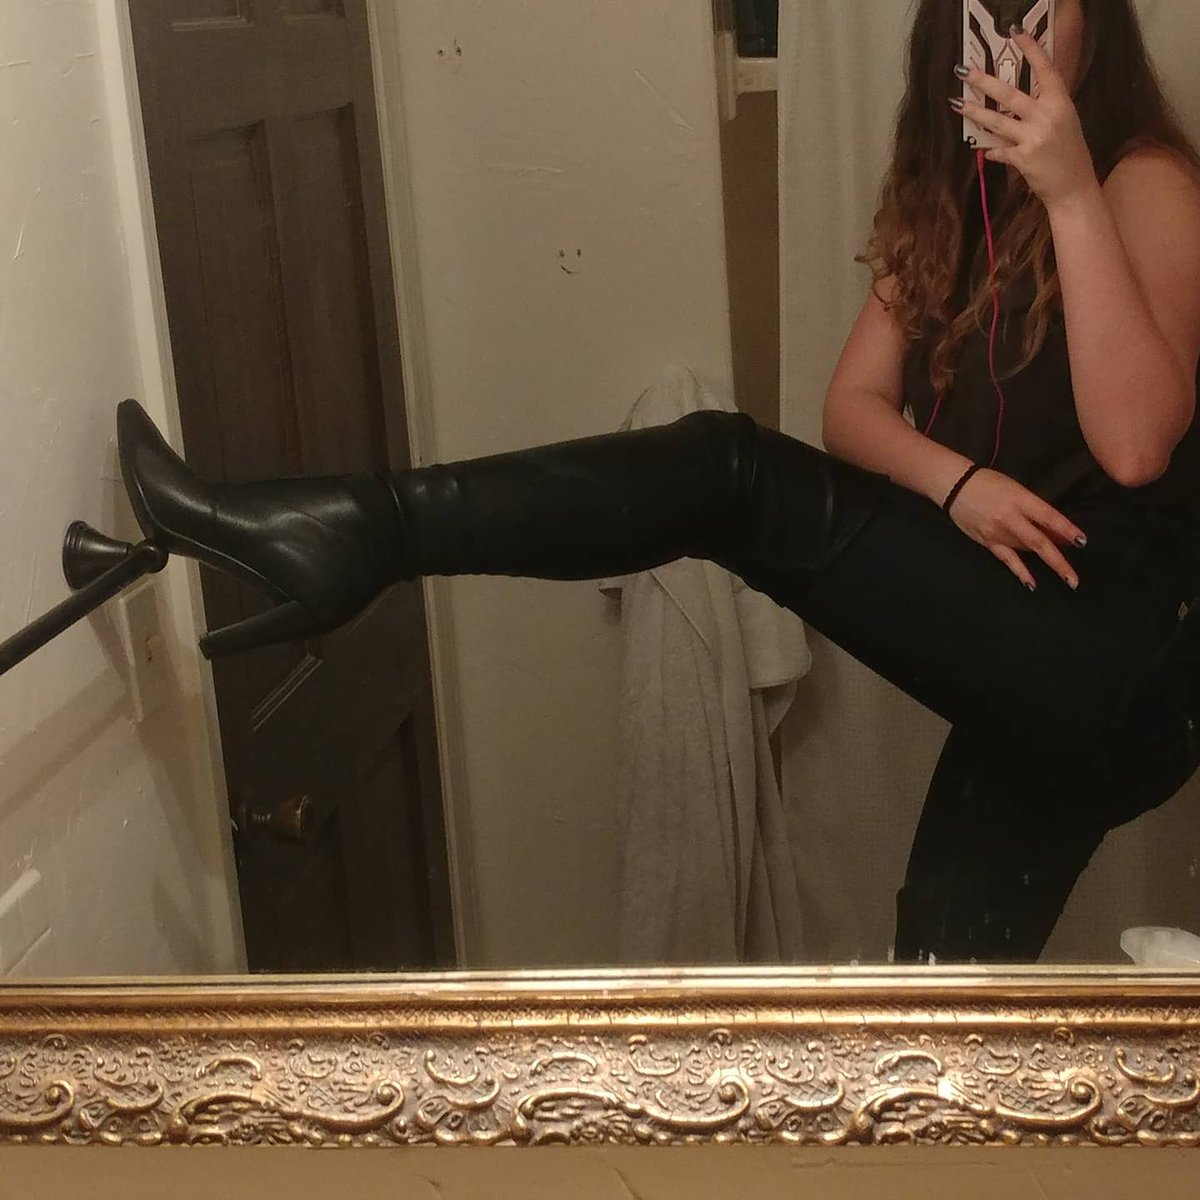 Sup gayboy, Julia revamp is in session because now her boots came in <br>http://pic.twitter.com/2AUurk6ivt